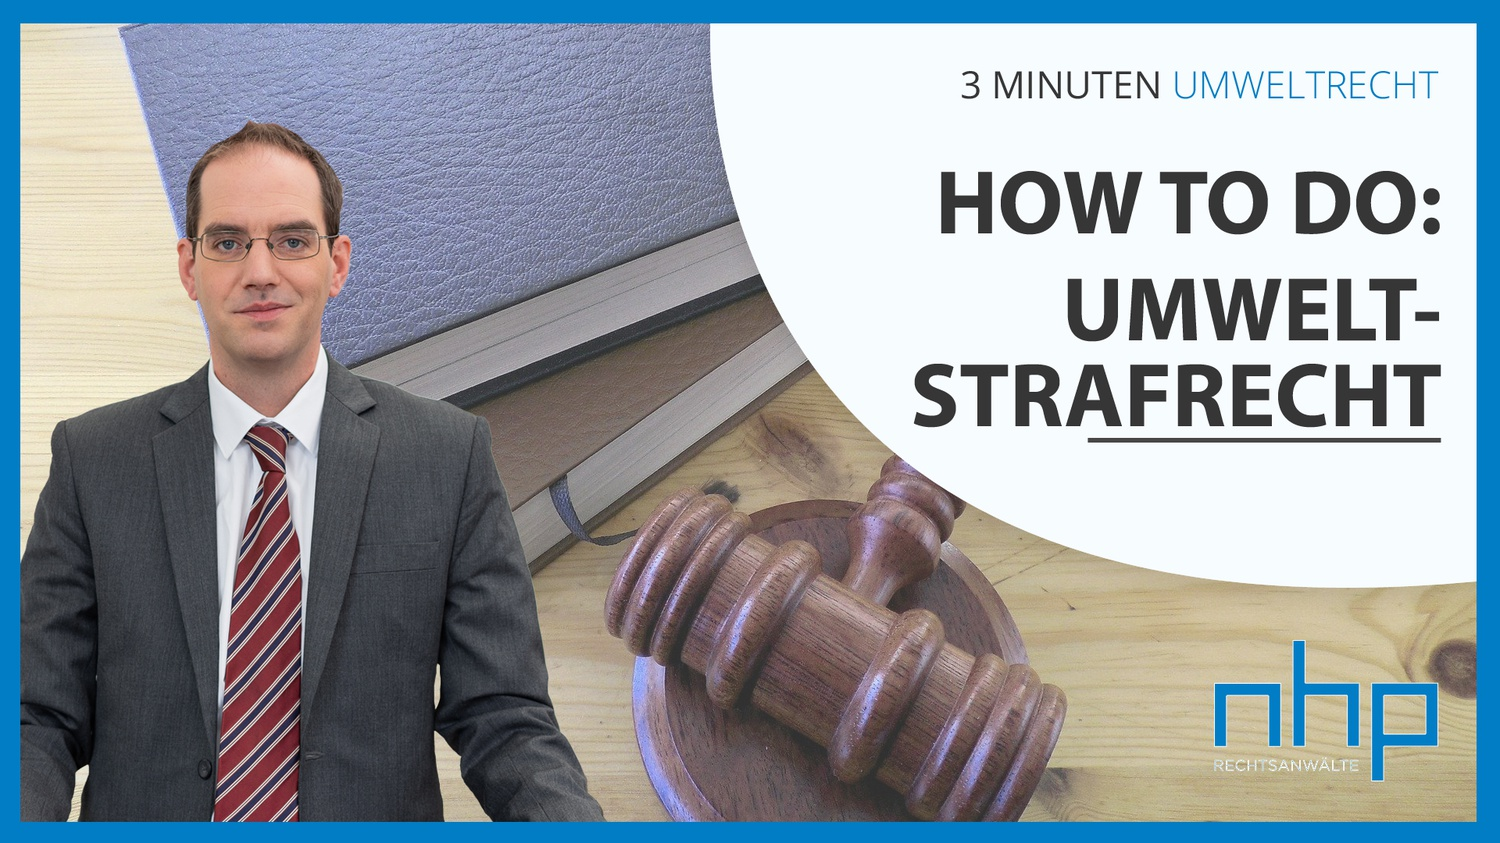 How to do: Umweltstrafrecht